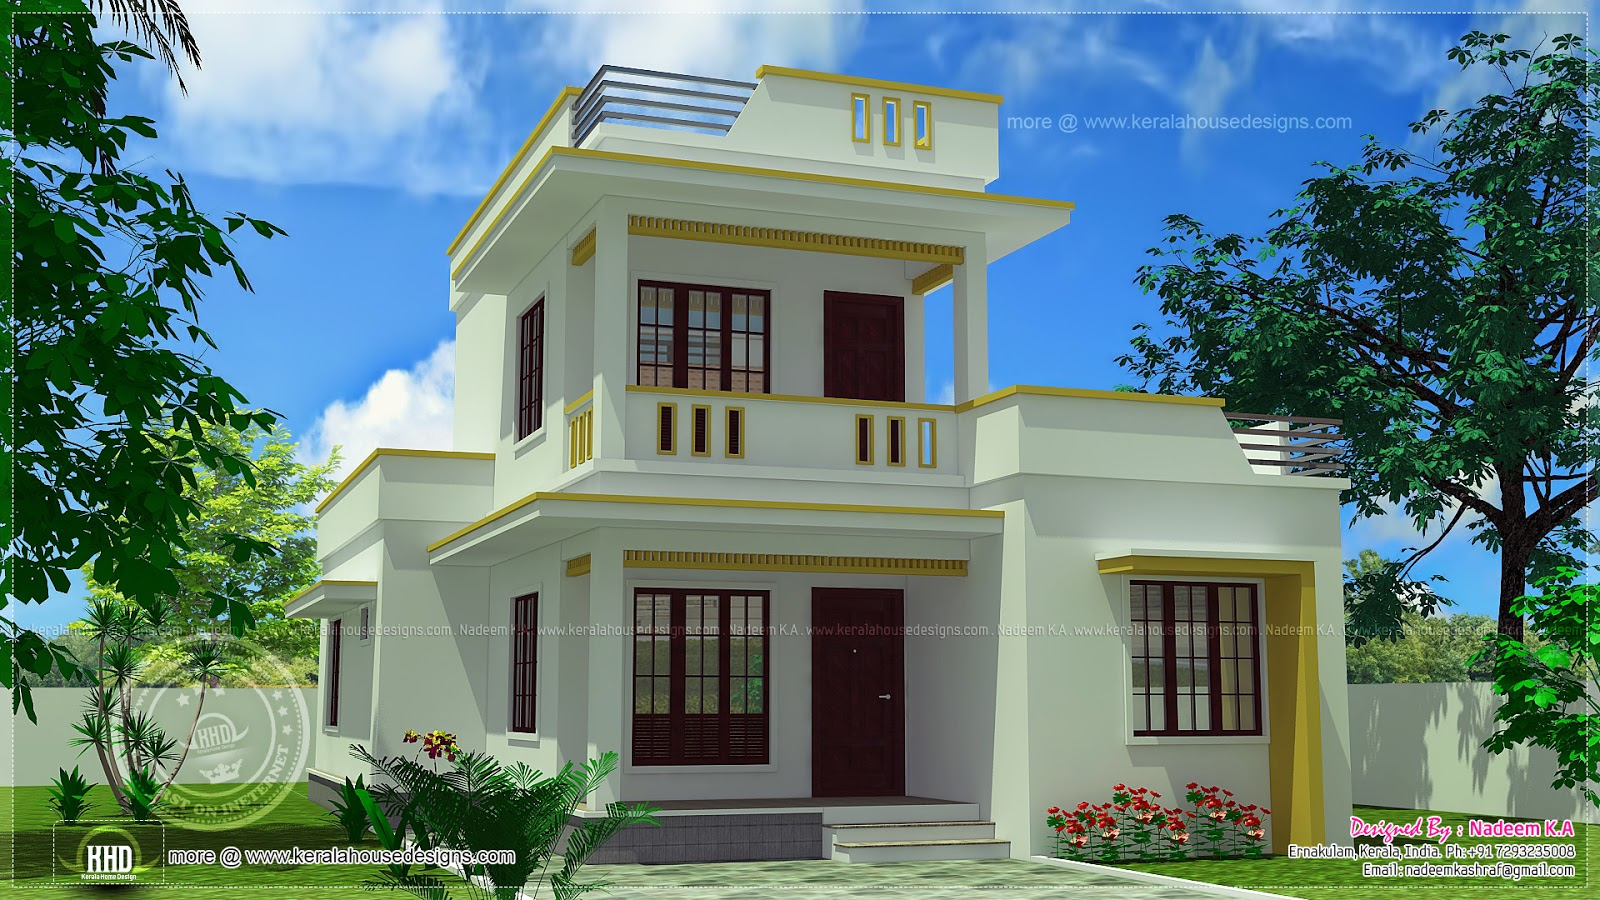 August 2013 kerala home design and floor plans Planning a house